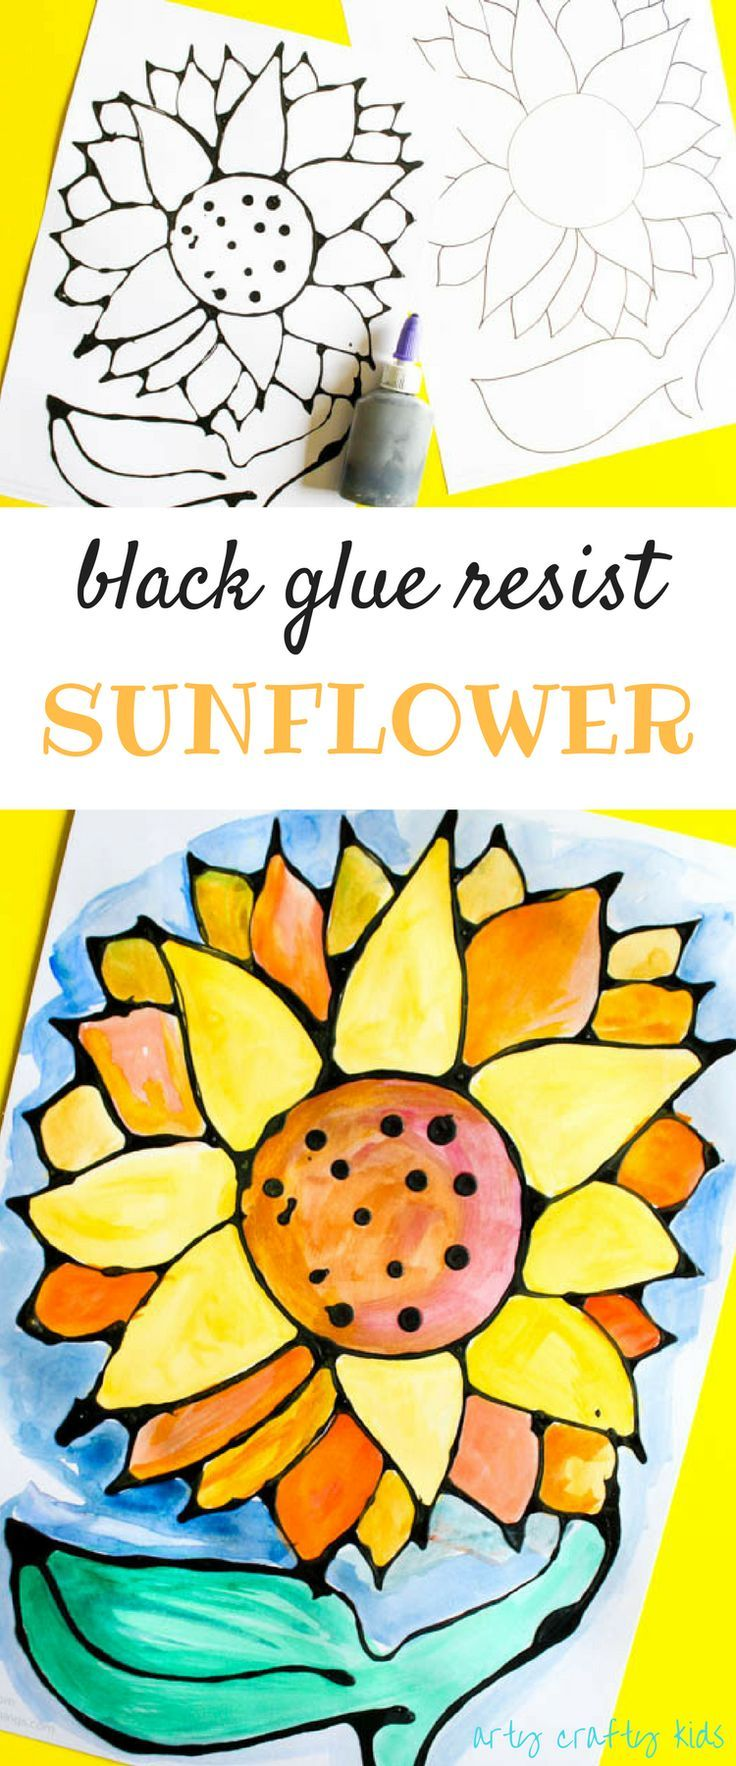 Black Glue Sunflower Art